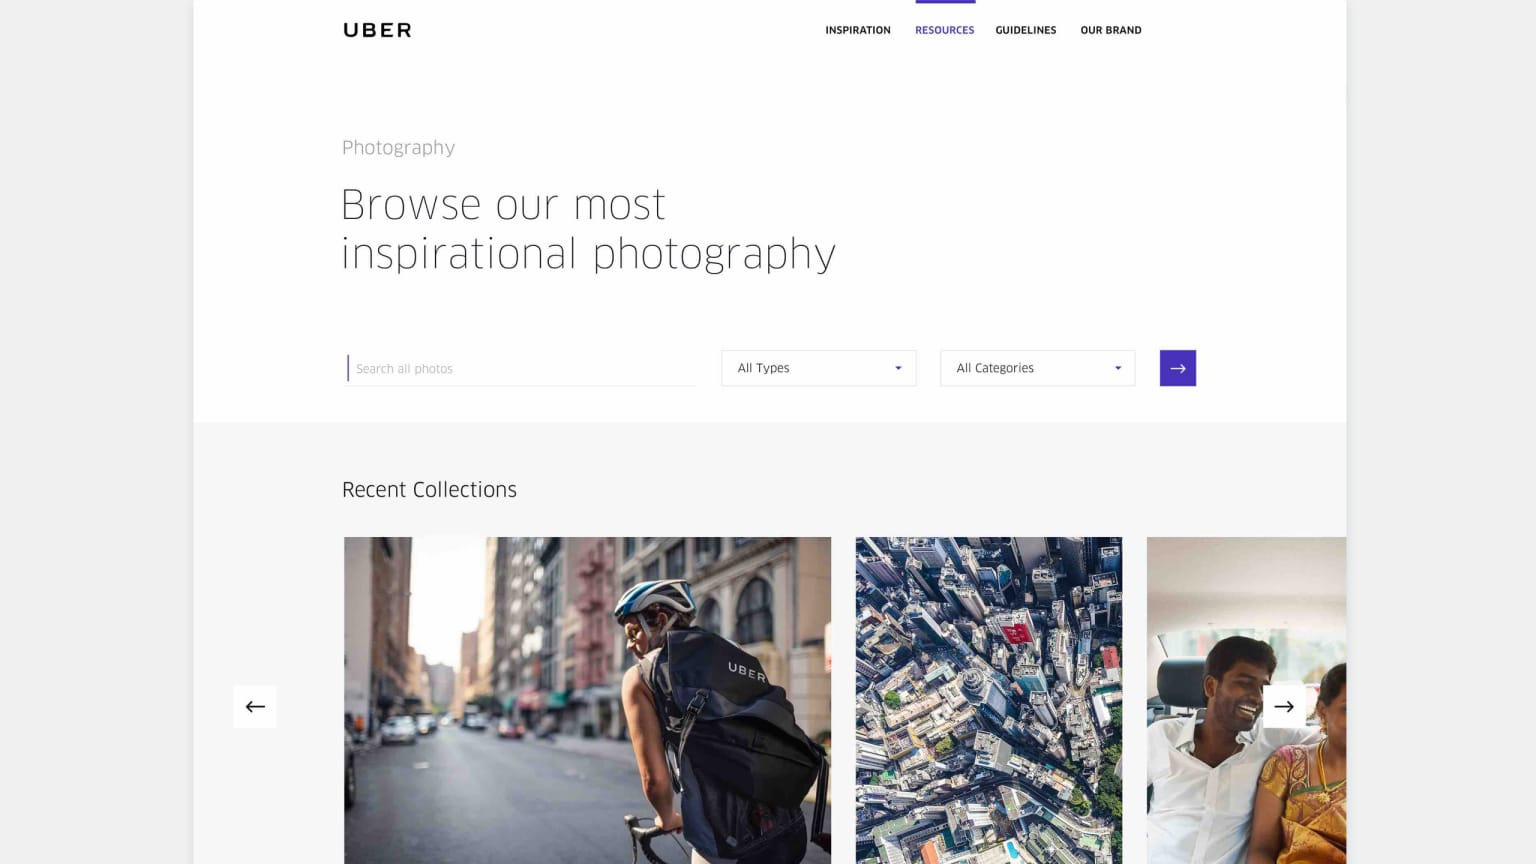 UBER: Digital Asset Manager